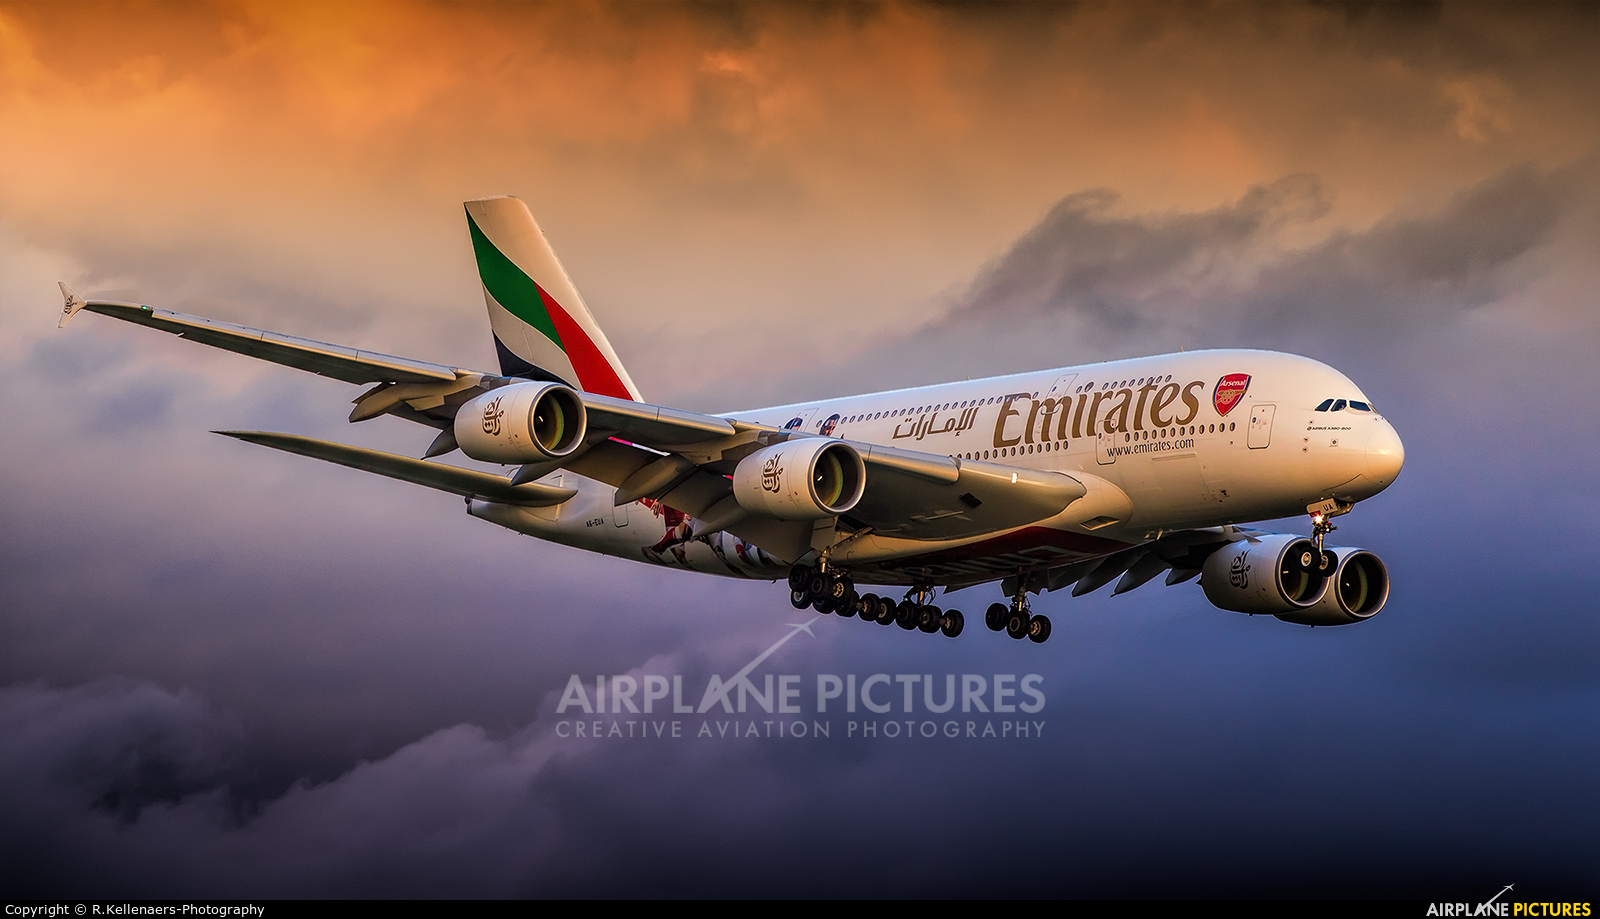 Emirates Airlines A6-EUA aircraft at London - Gatwick